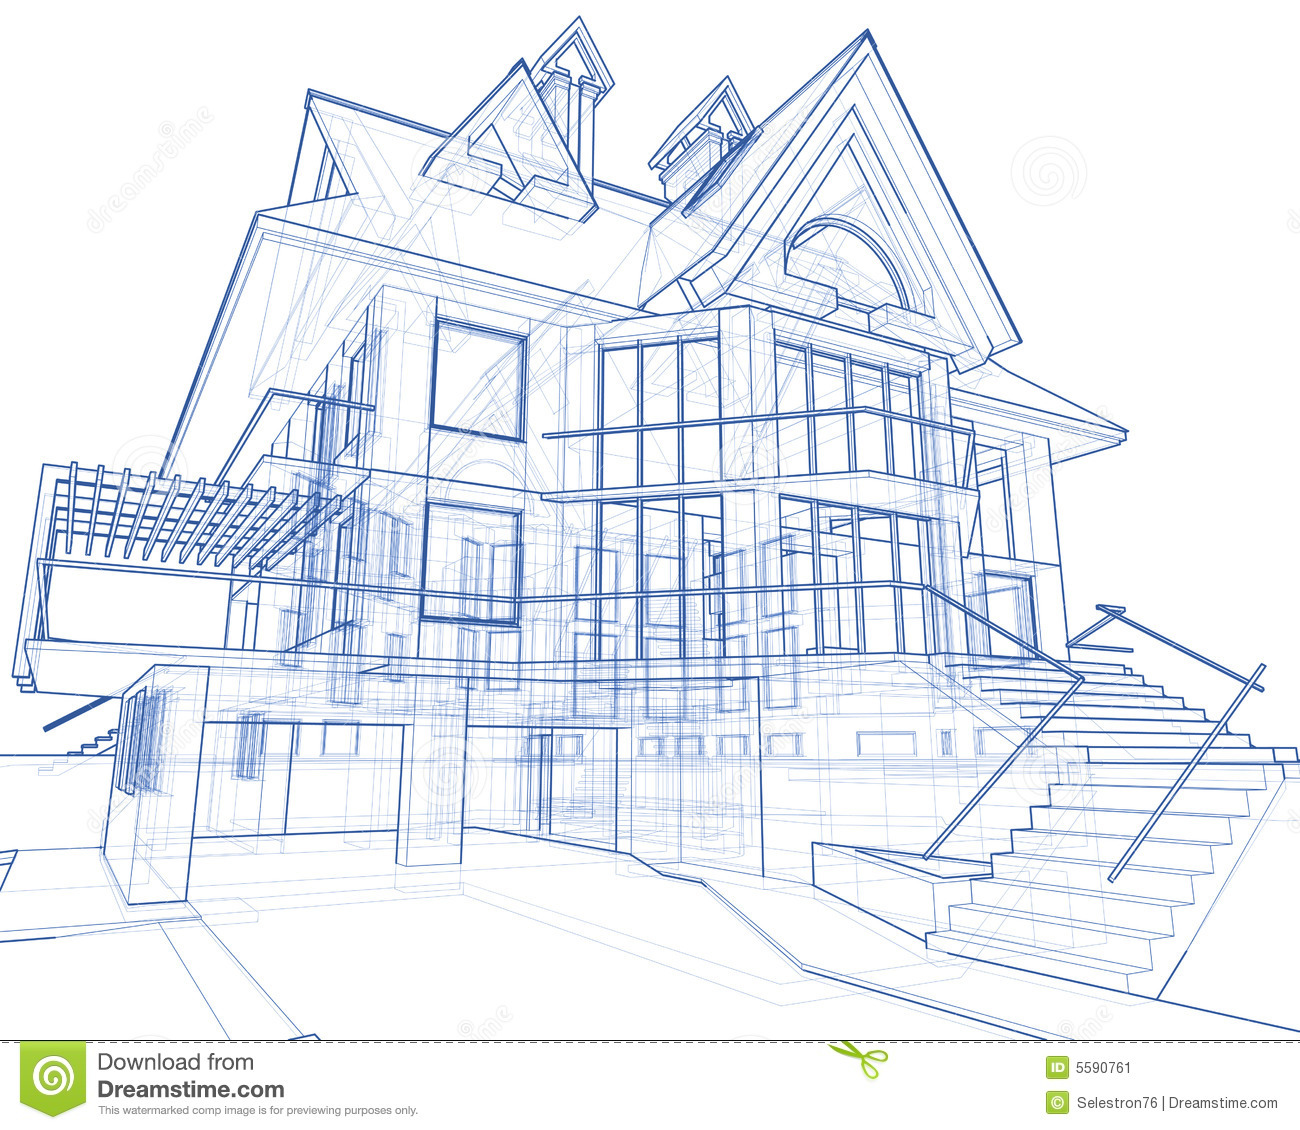 House blueprint images house 23731 blueprint details floor plans house architecture blueprint stock image image 5590761 for house blueprint images malvernweather Image collections